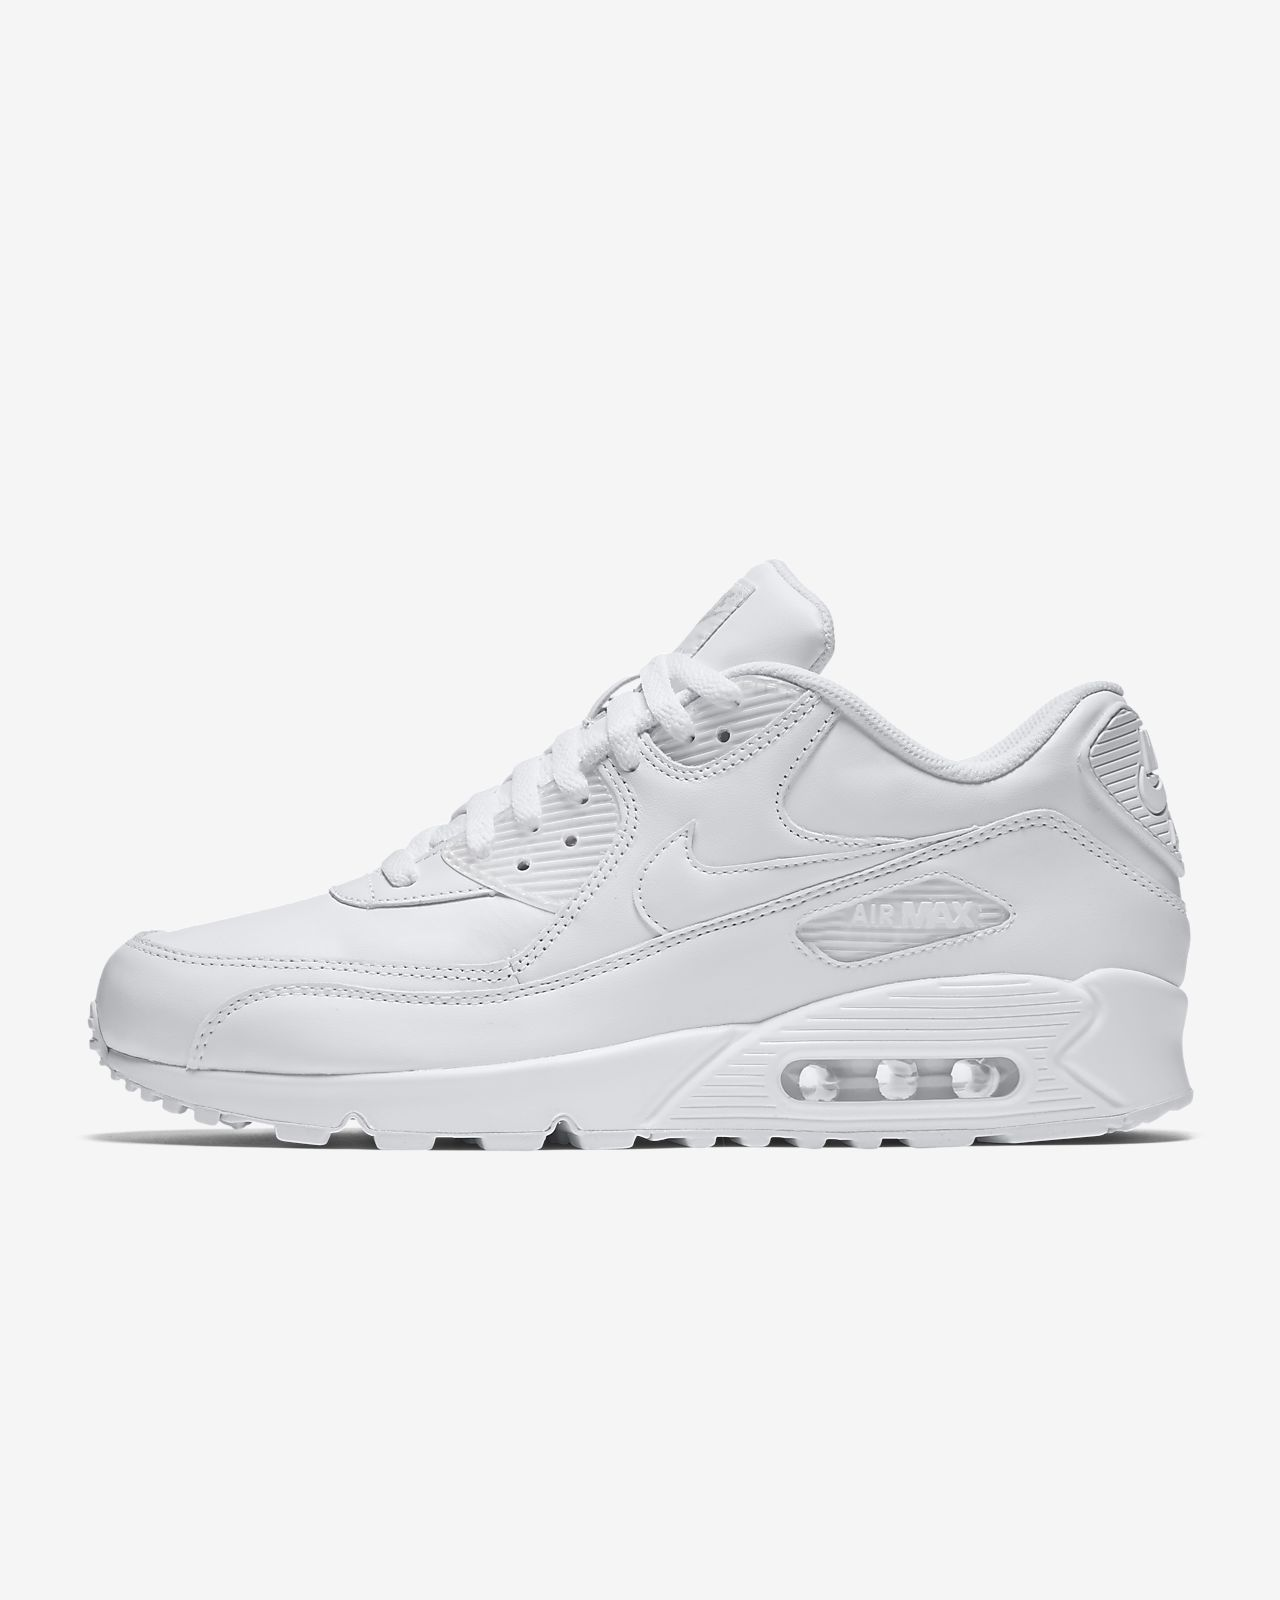 4021240e Мужские кроссовки Nike Air Max 90 Leather. Nike.com RU